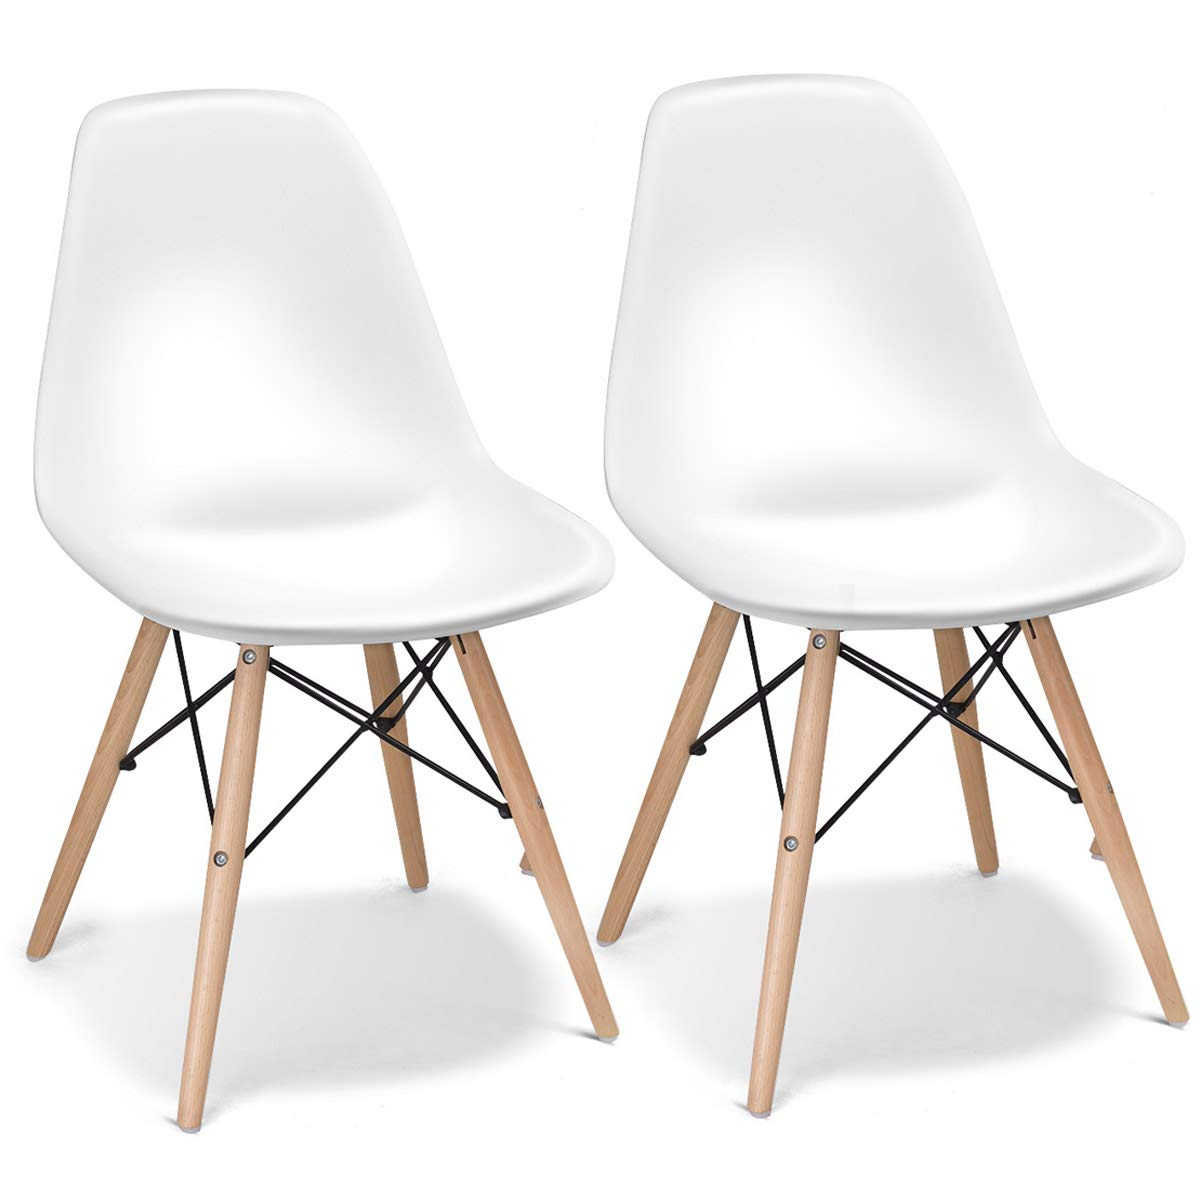 Enjoyable Giantex Dining Chair Armless Mid Century Modern Style Plastic Seat Wood Dowel Legs For Bedroom Accent Living Room Dsw Chair Gmtry Best Dining Table And Chair Ideas Images Gmtryco